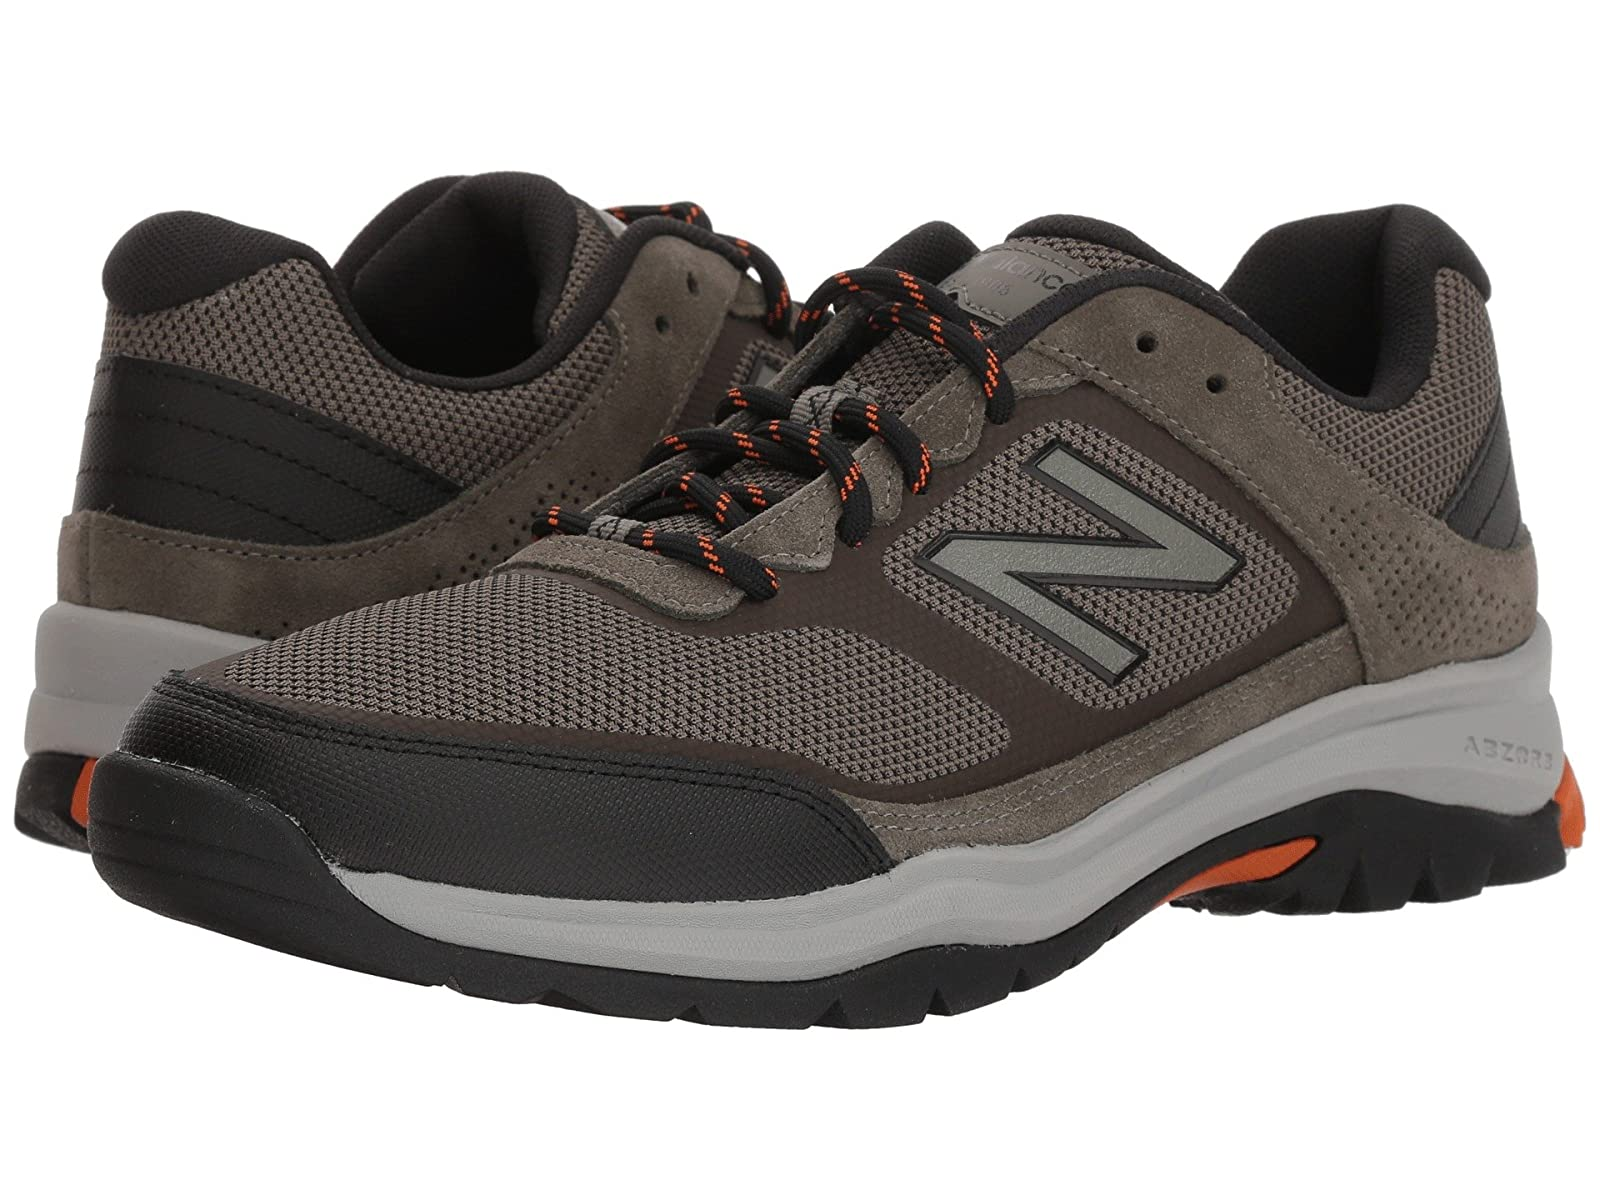 New Balance MW669v1Atmospheric grades have affordable shoes